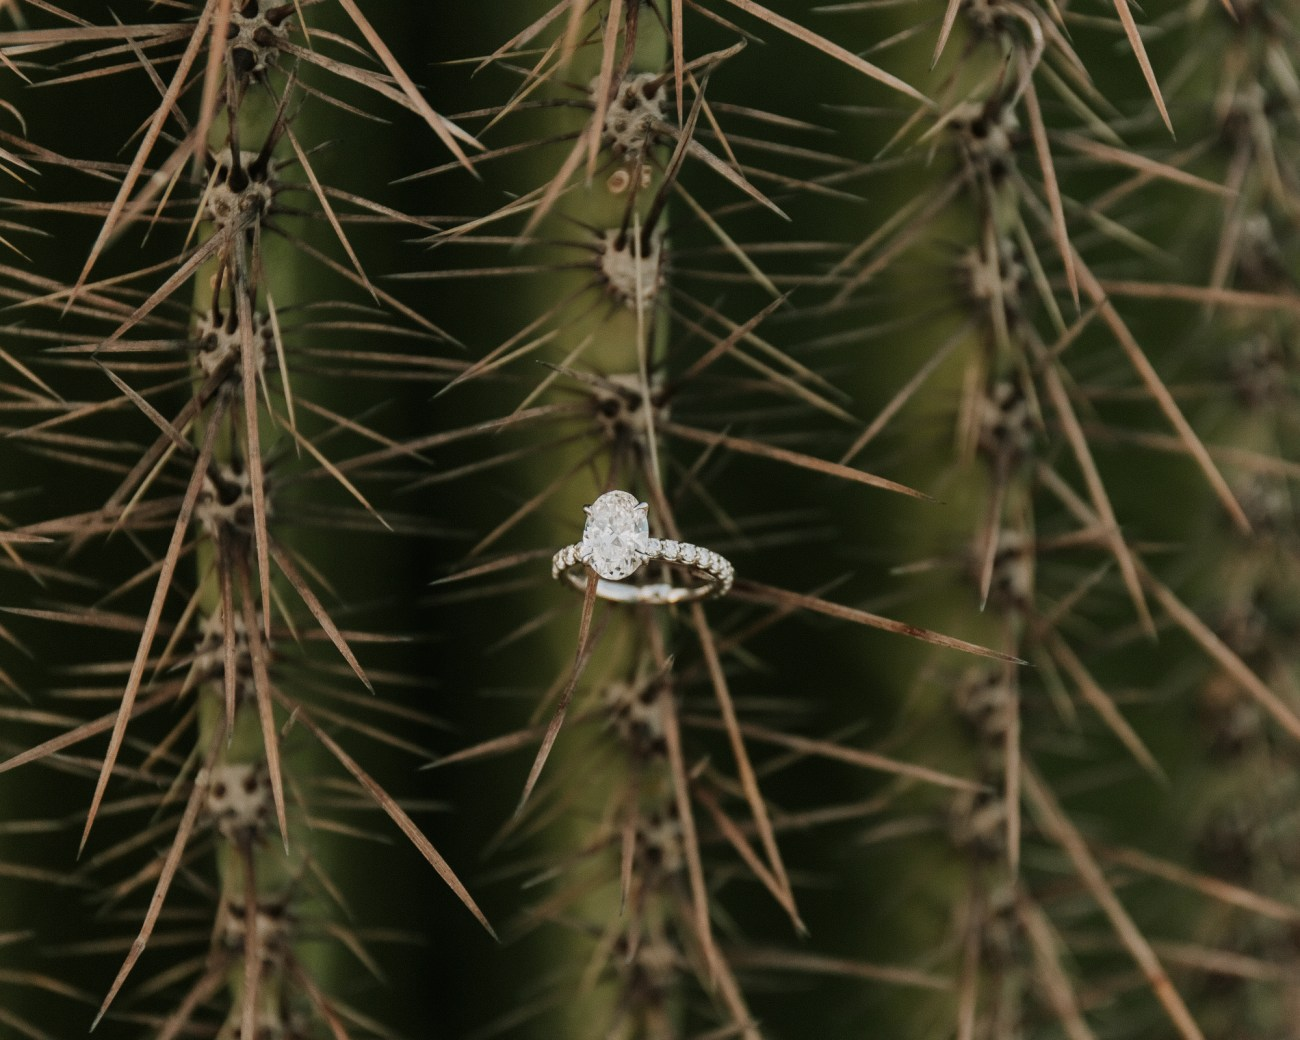 Megan Claire Photography | Arizona Wedding Photographer. Desert engagement portrait photoshoot. Cactus oval diamond engagement ring @meganclairephoto